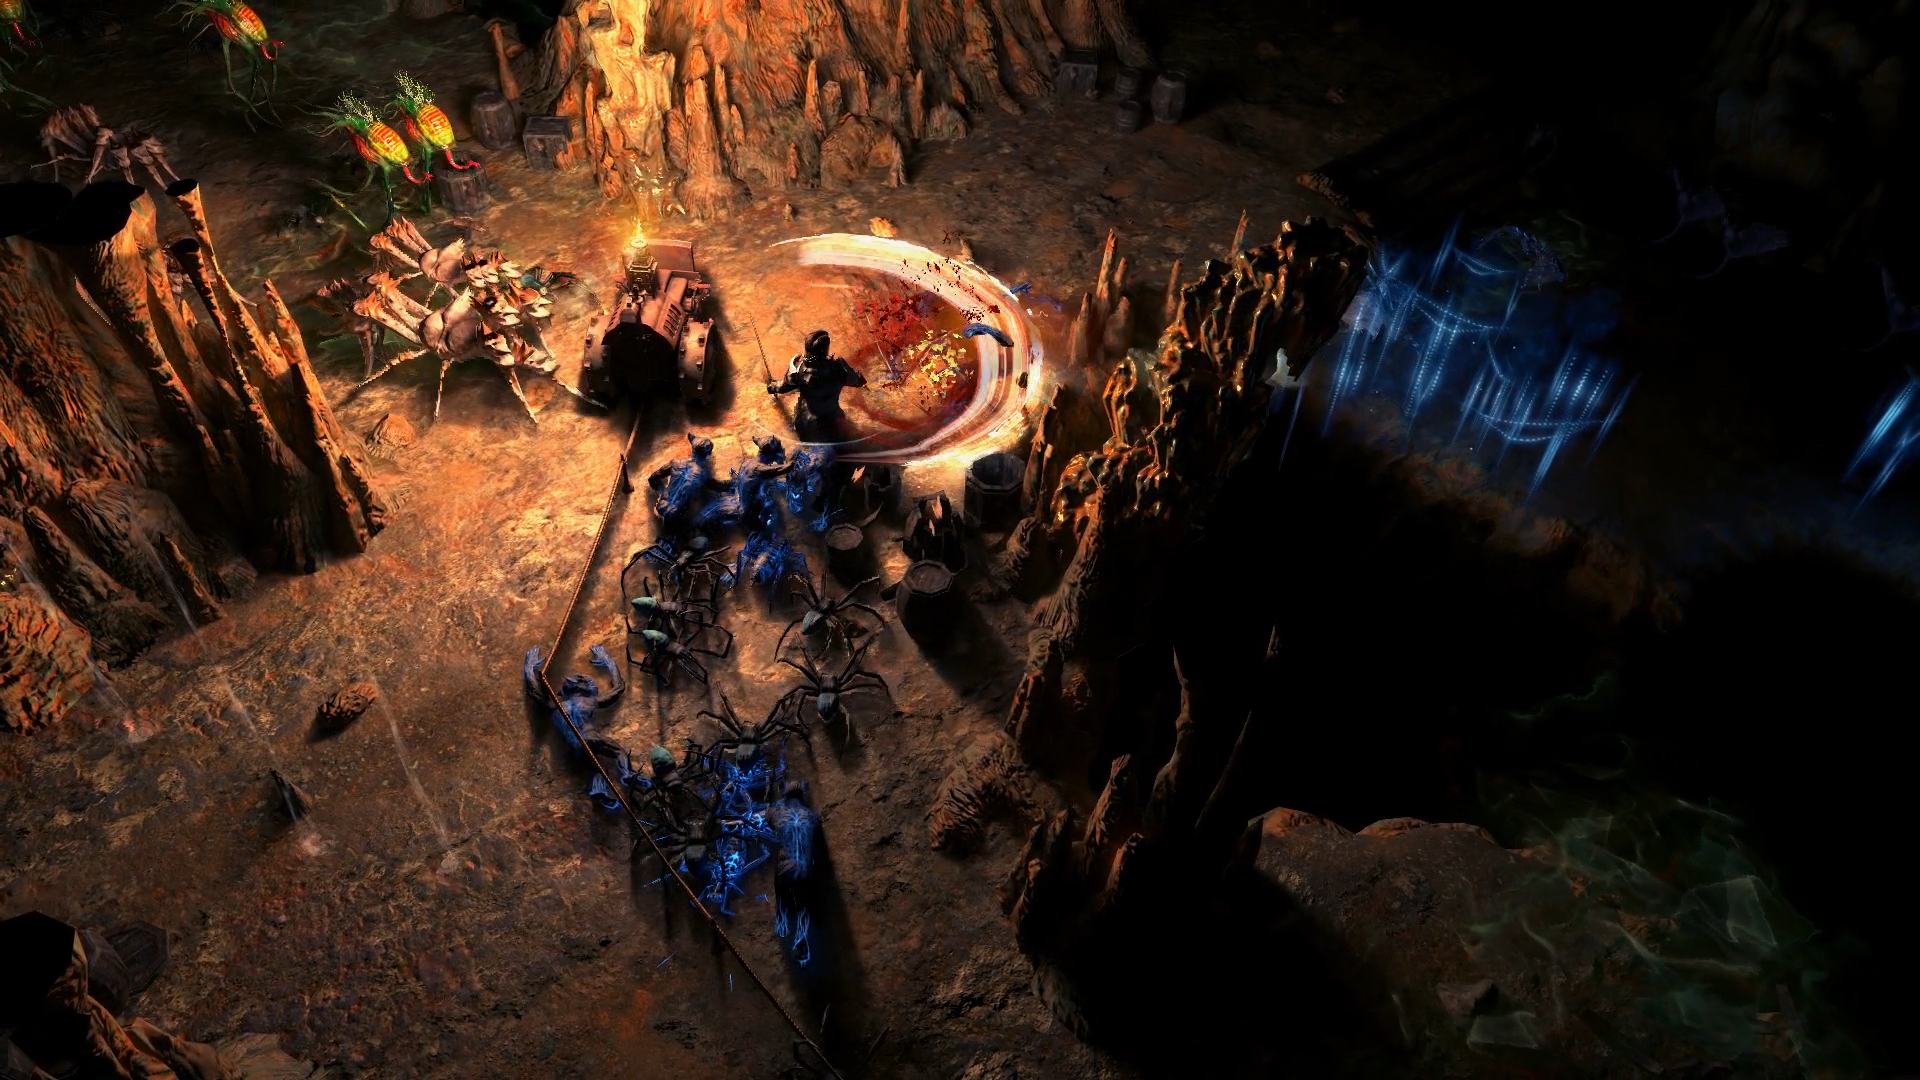 Path of Exile's endless dungeon expansion, Delve, is out now